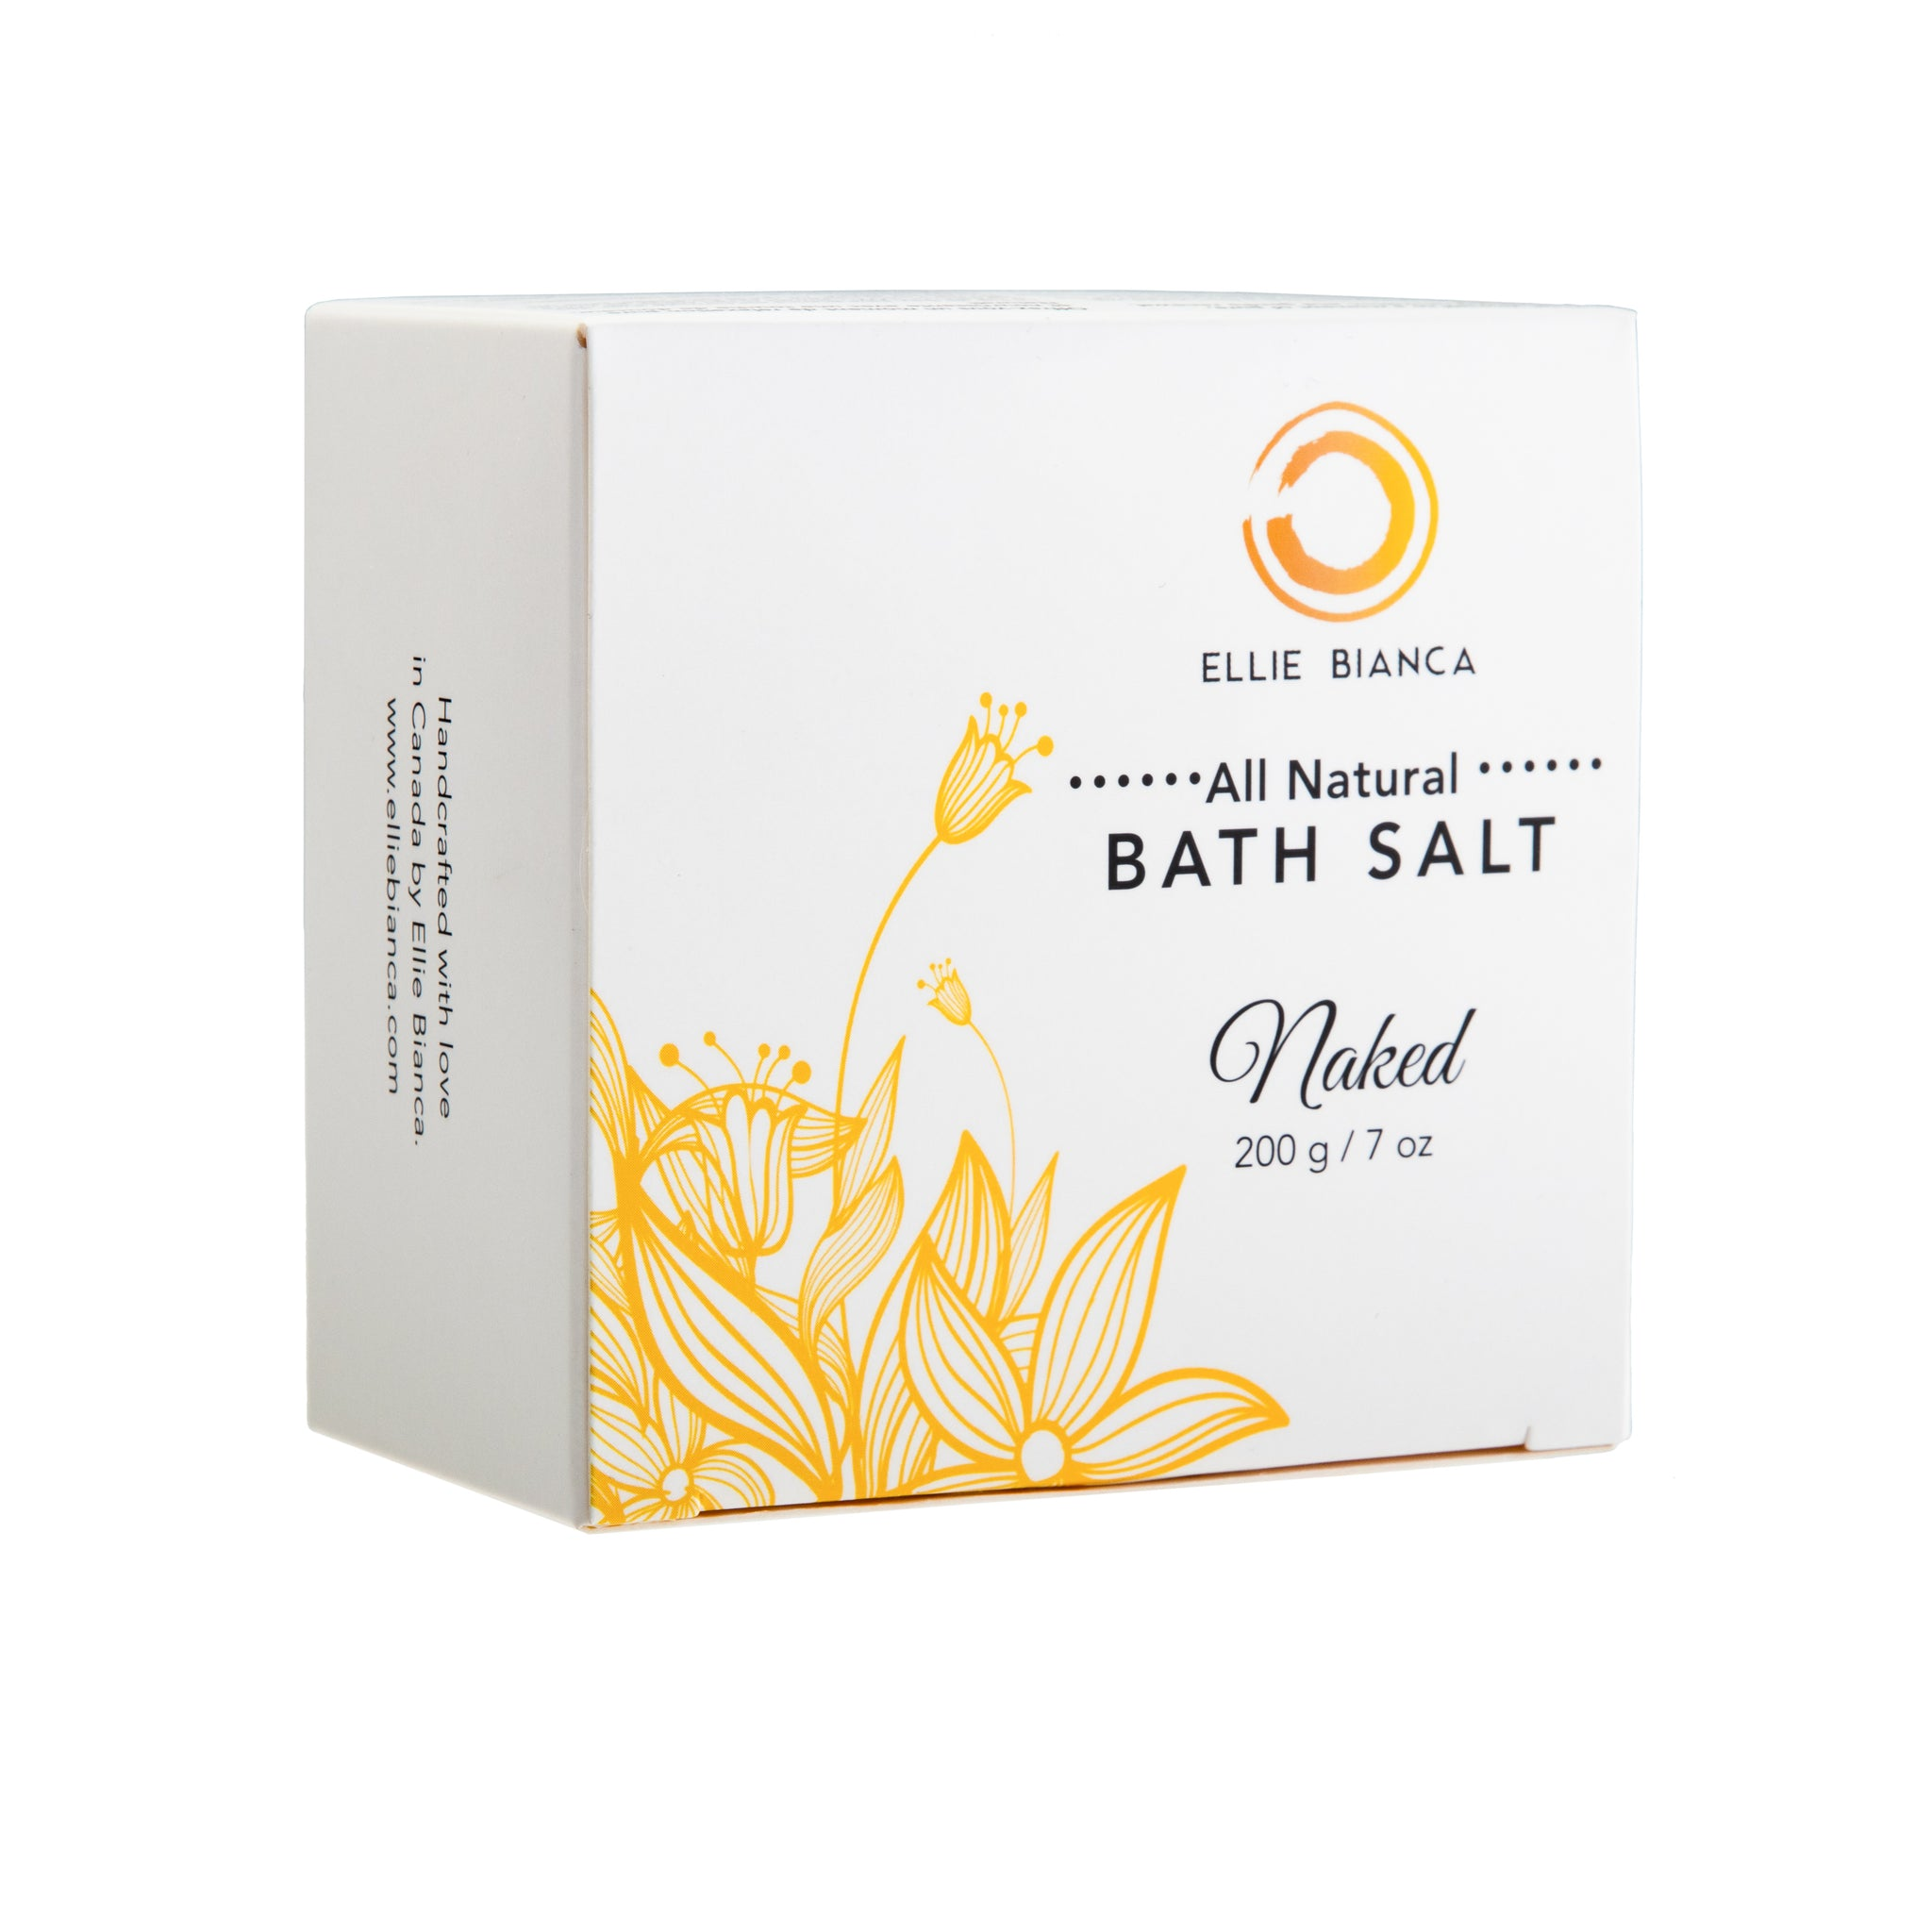 Naked Bath Salt